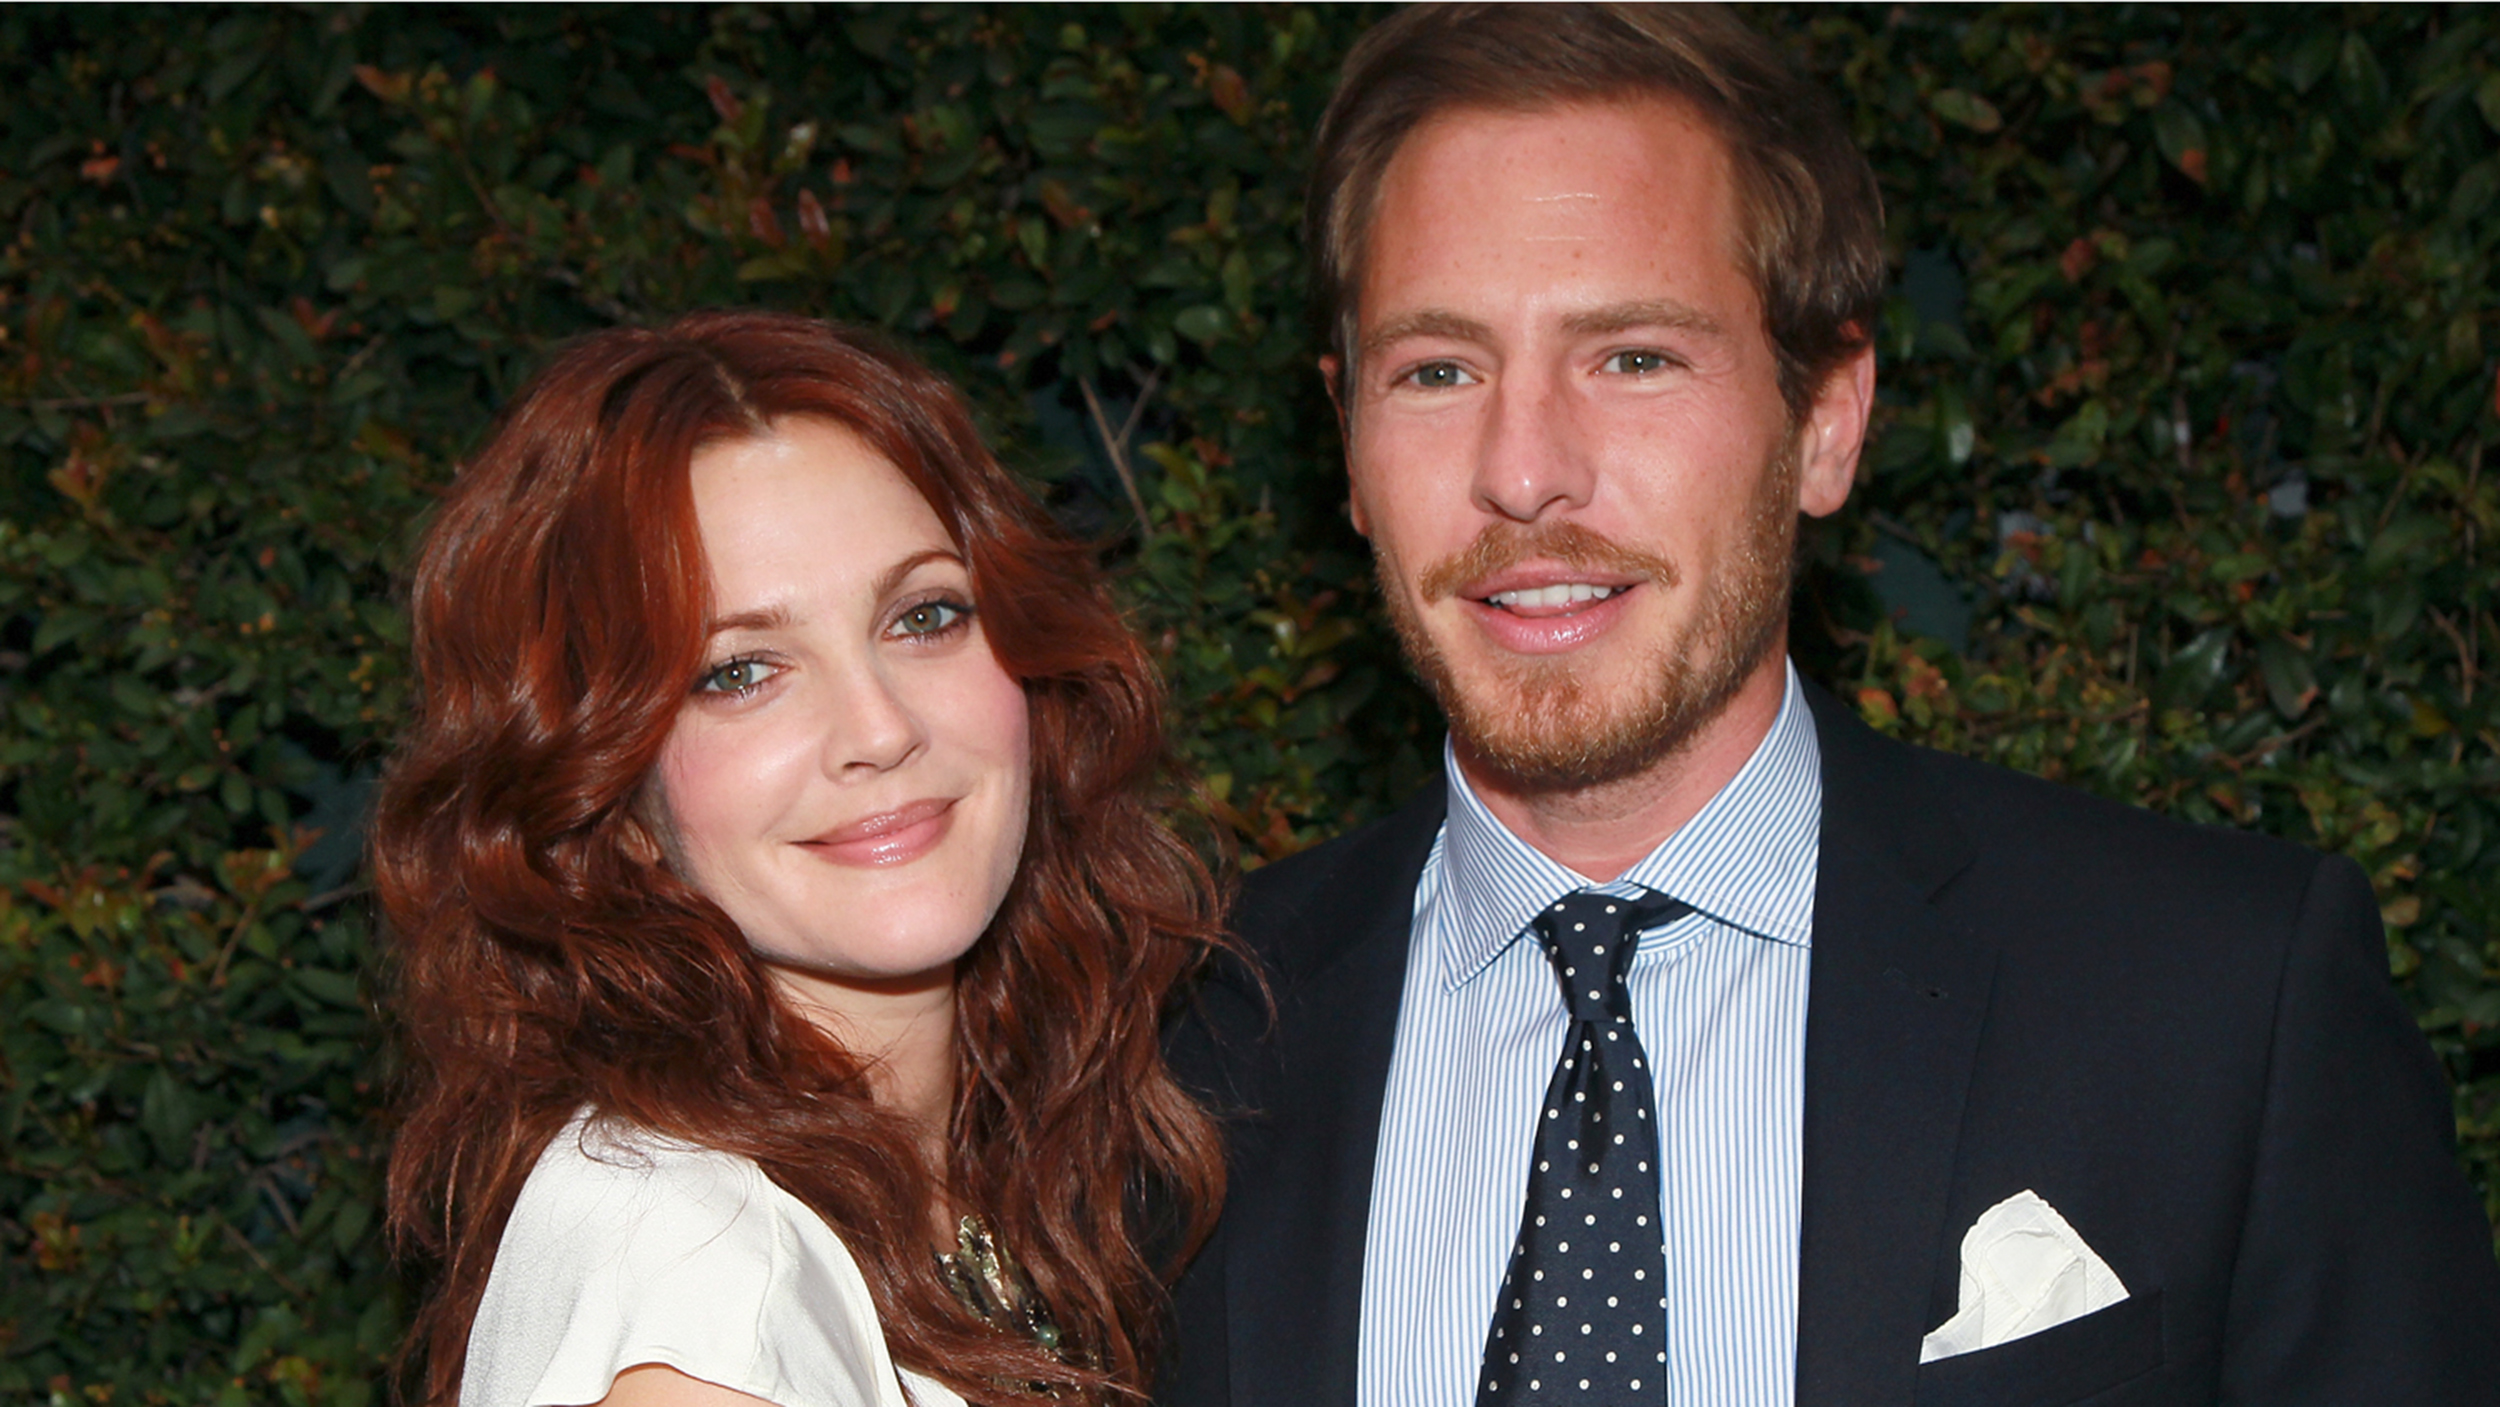 Drew Barrymore and her husband reported divorcing 04/02/2016 59